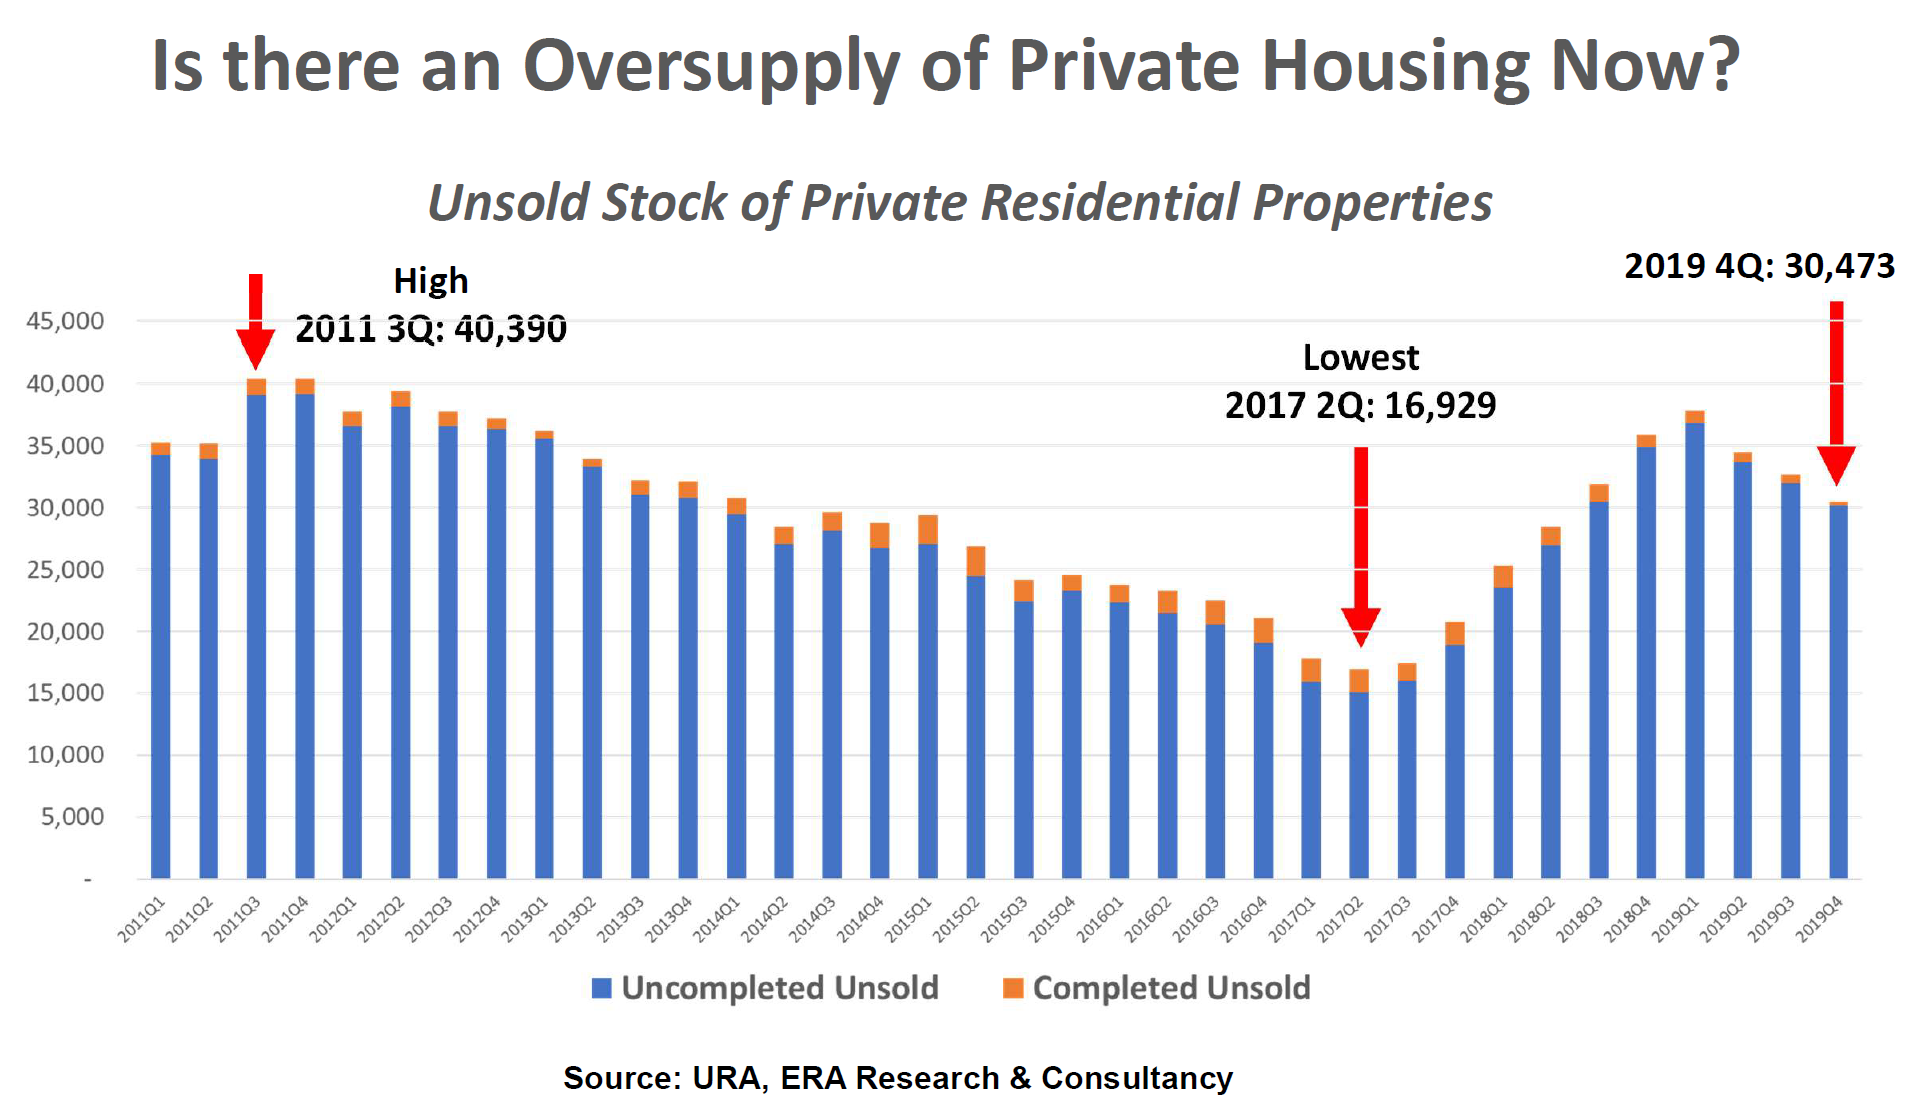 Supply of unsold units is falling